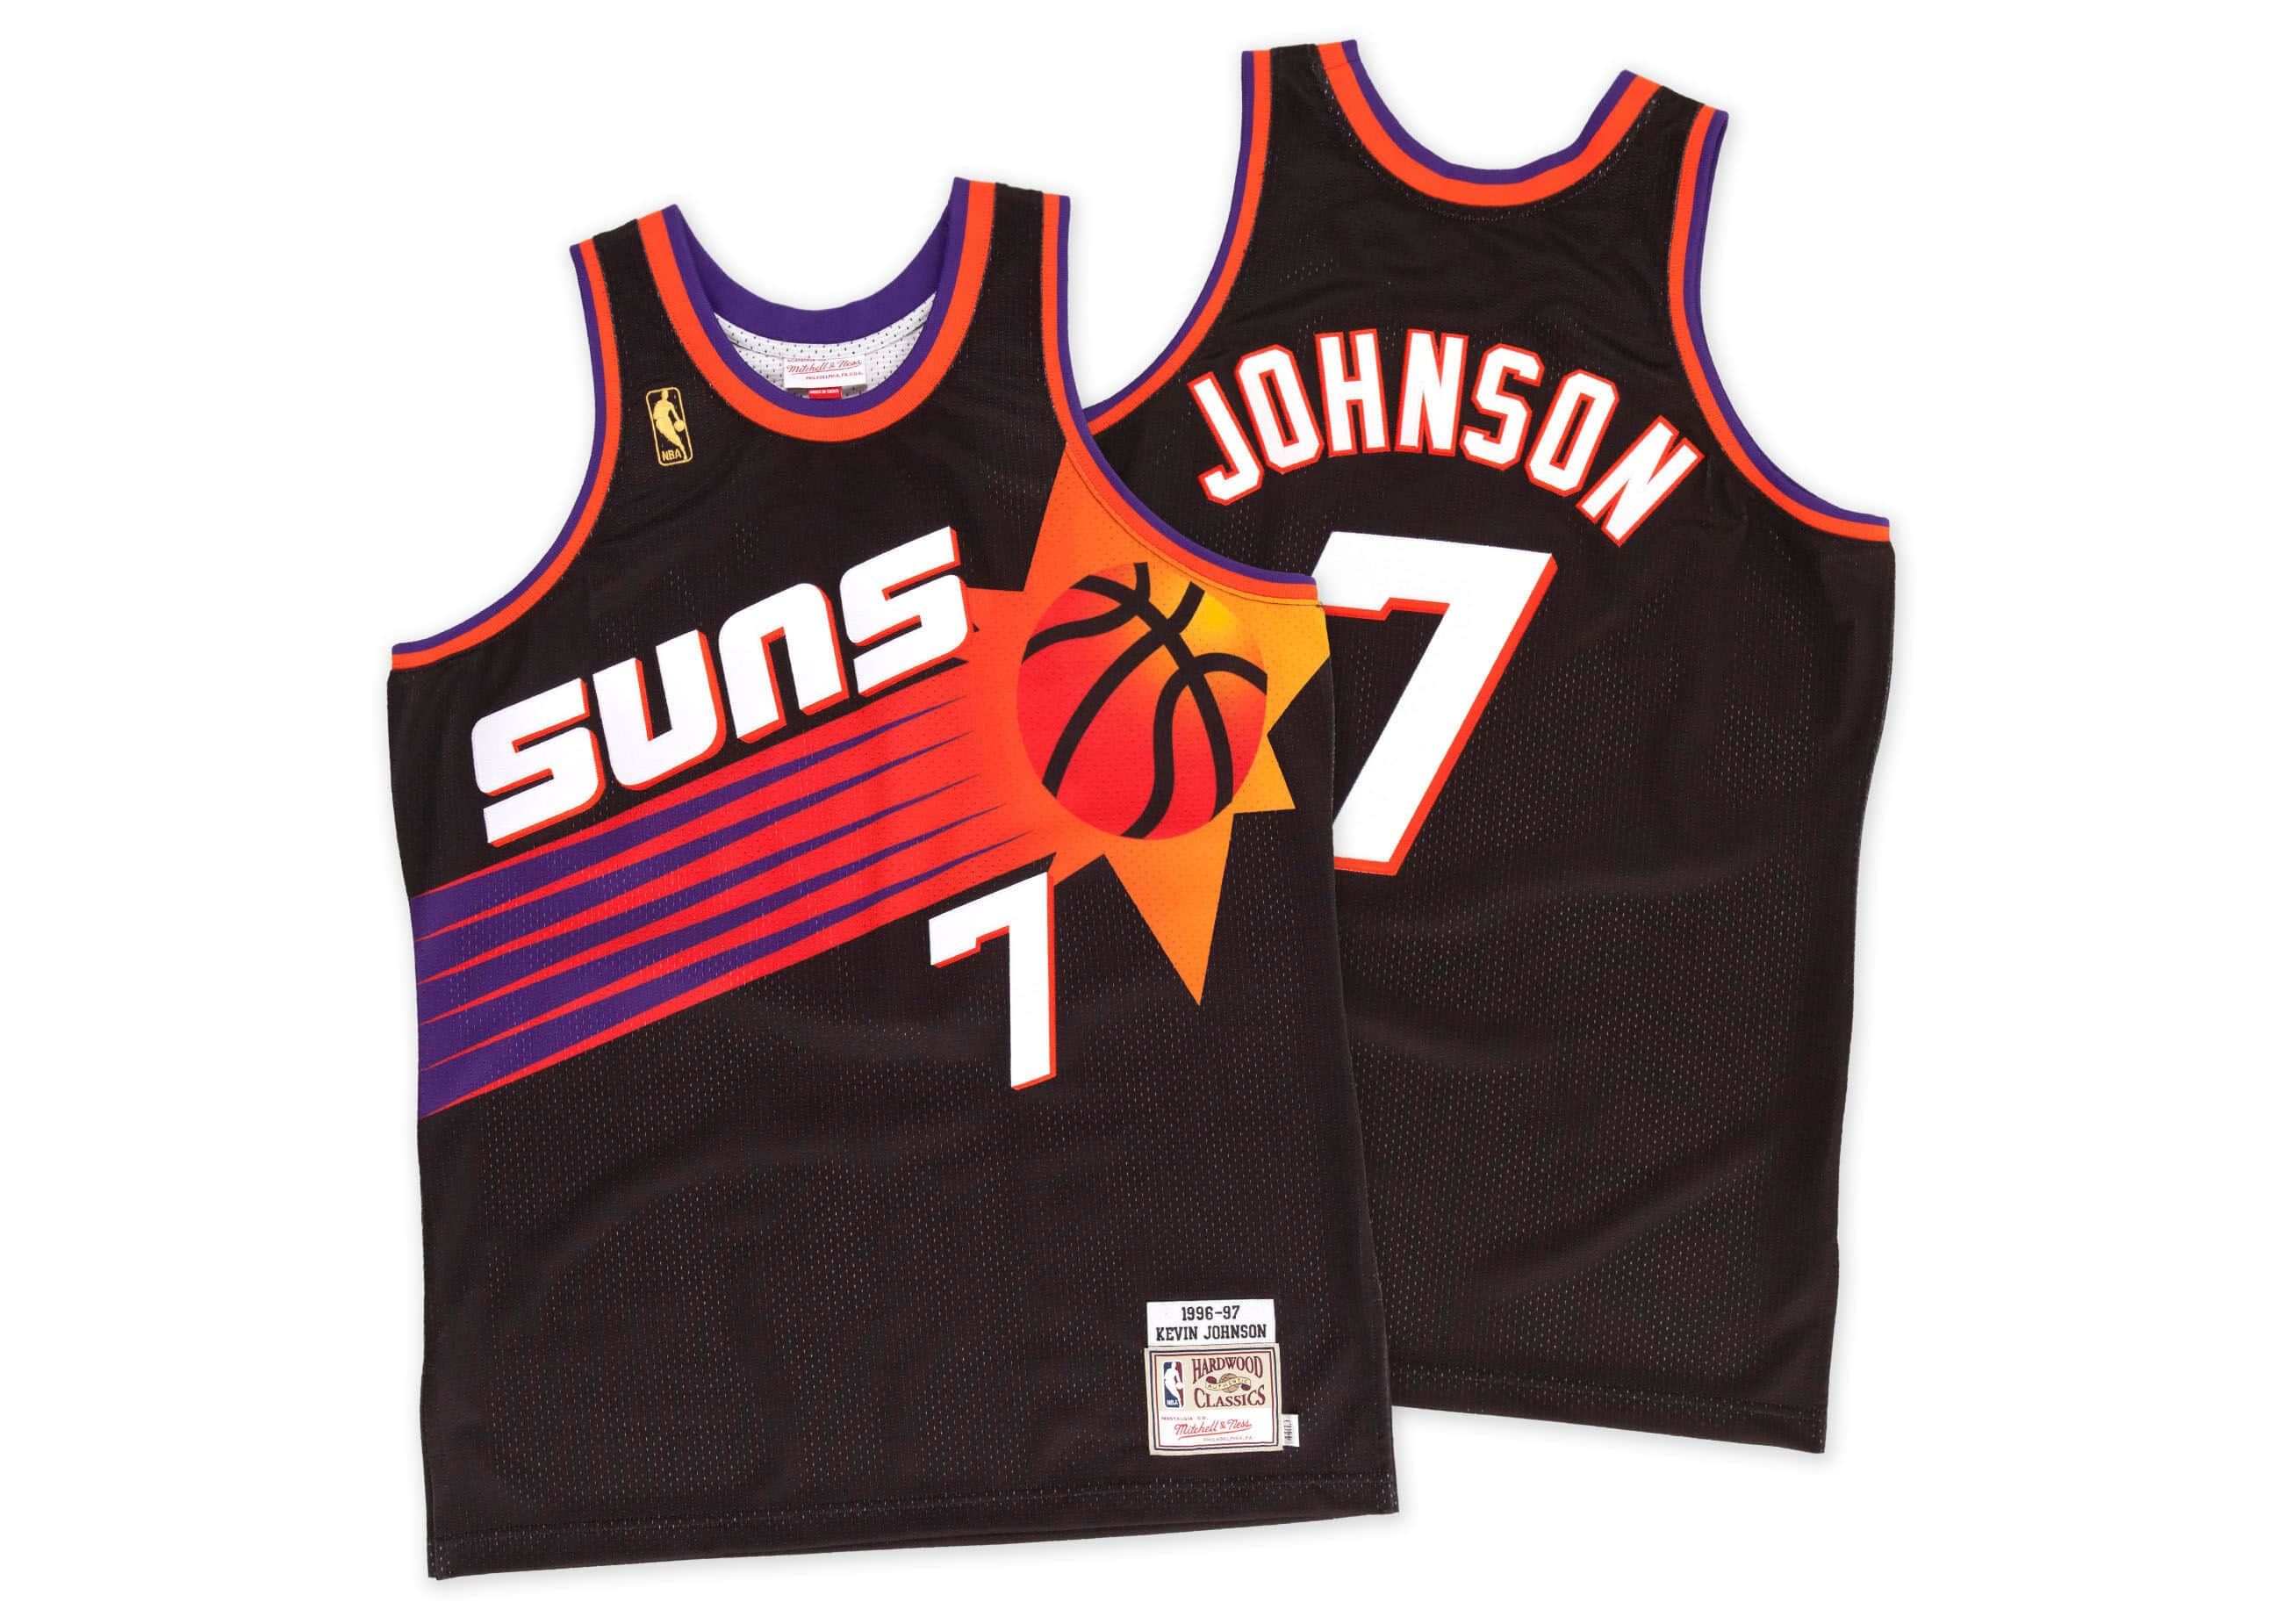 Kevin Johnson 1996-97 Authentic Jersey Phoenix Suns